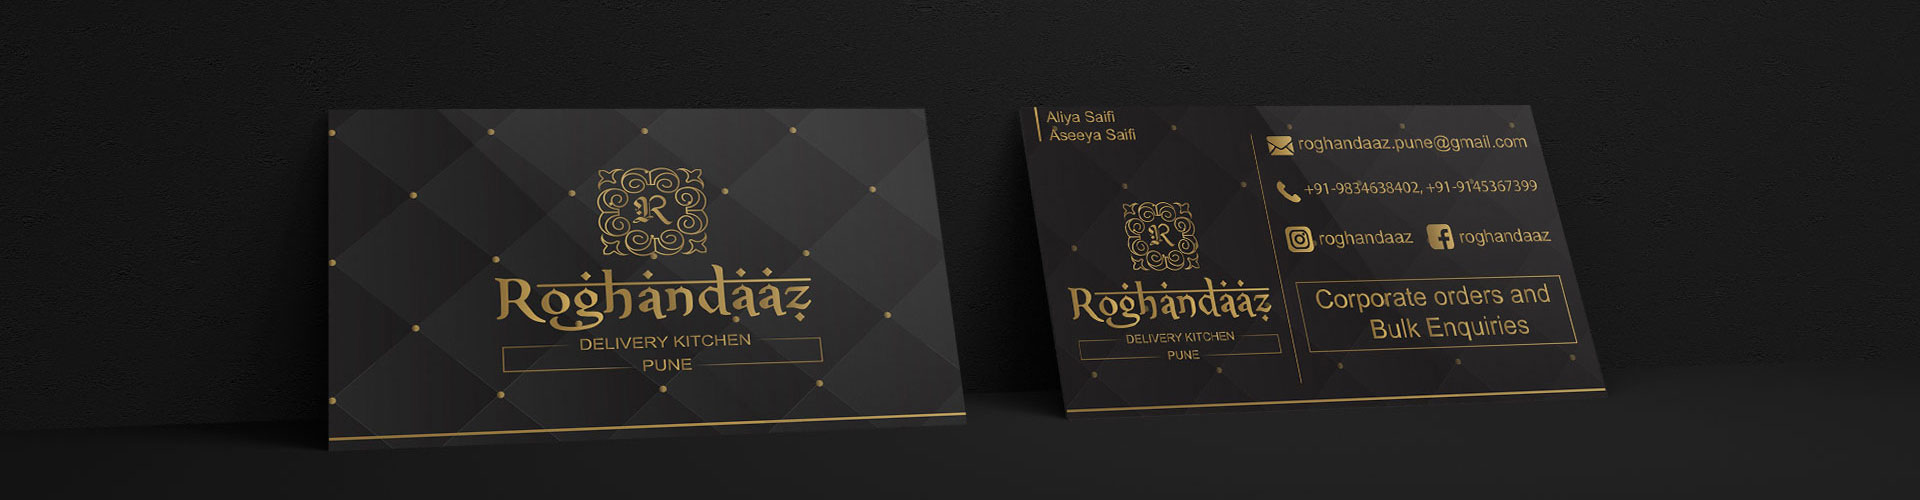 Roghandaaz-Busines-Card-02